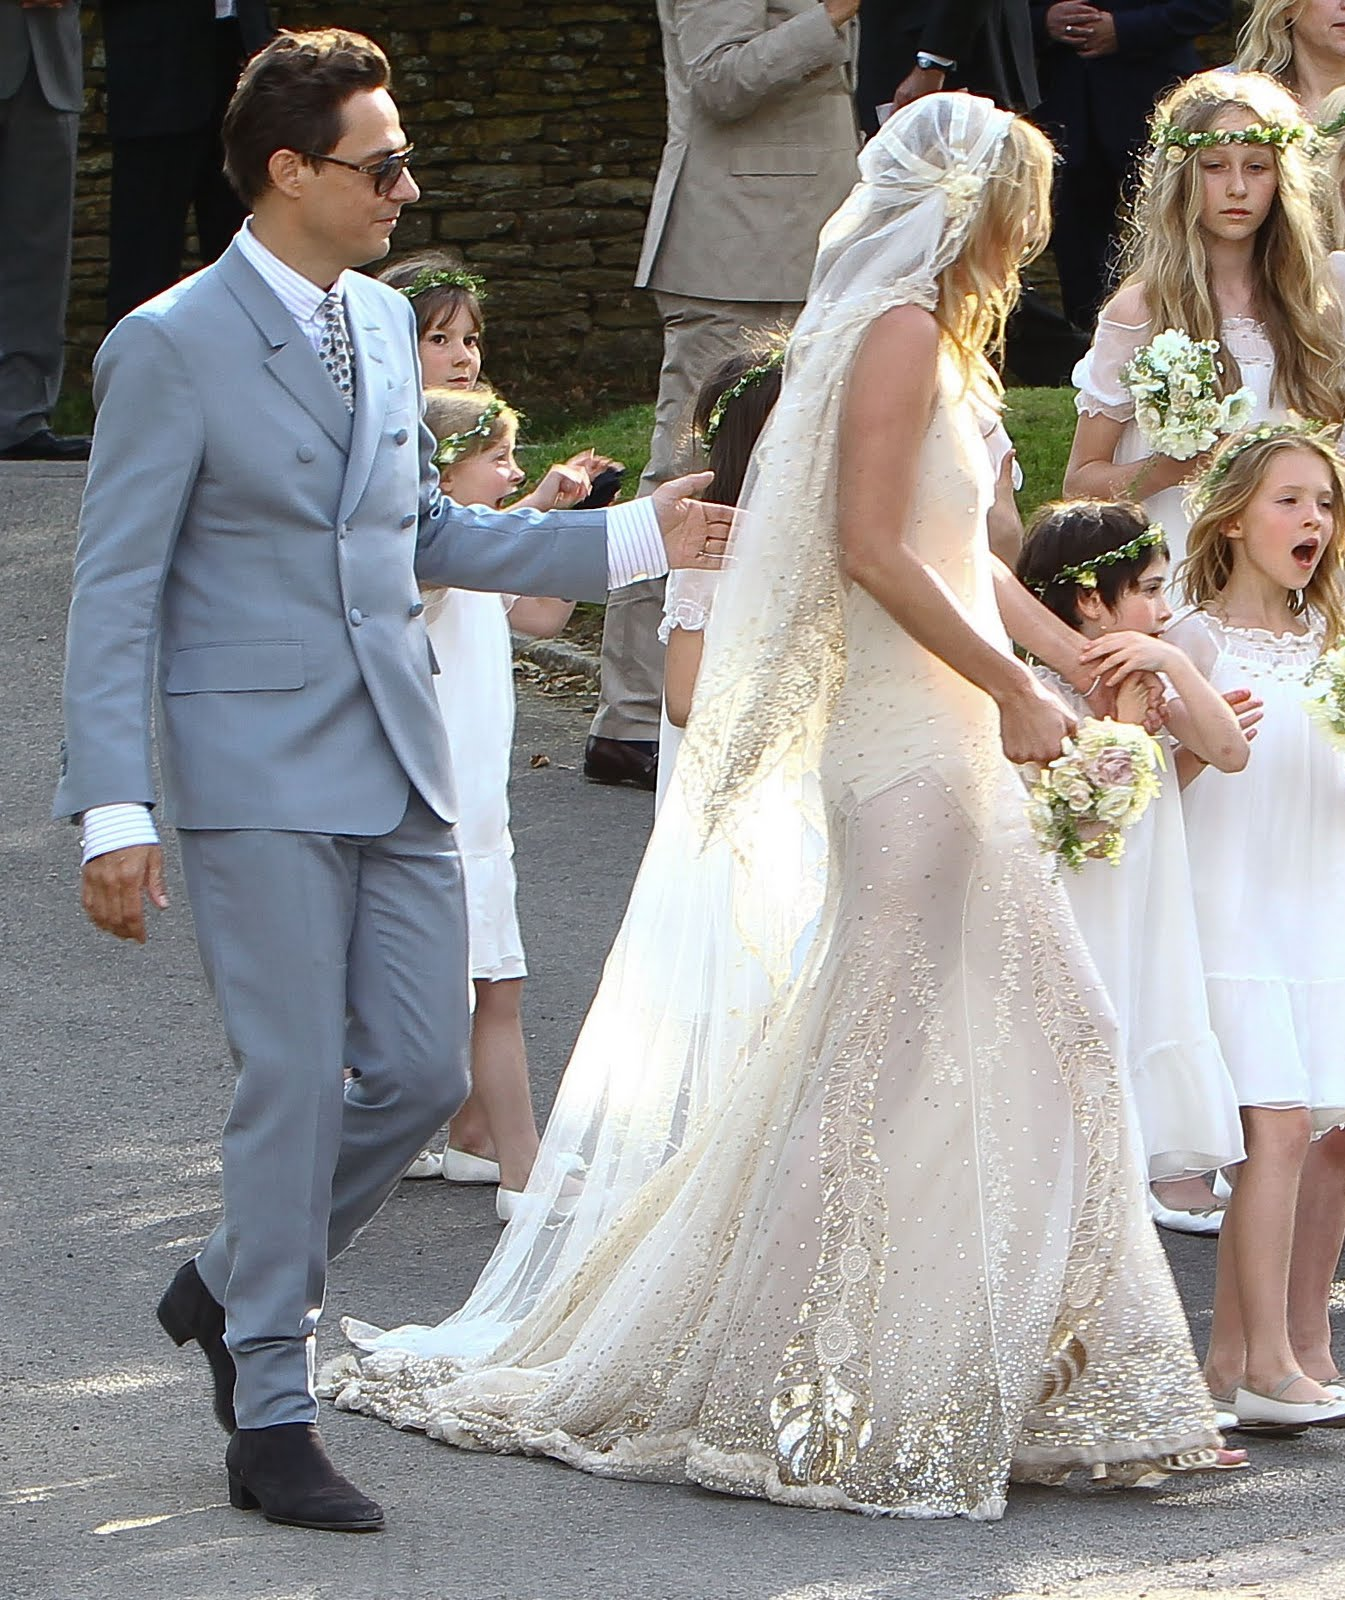 http://4.bp.blogspot.com/-2WBT9oThR4g/TiysAVdhayI/AAAAAAAAAQw/6dH9ZamKTps/s1600/wenn3420966-Kate-Moss-Wedding-Dress.jpg